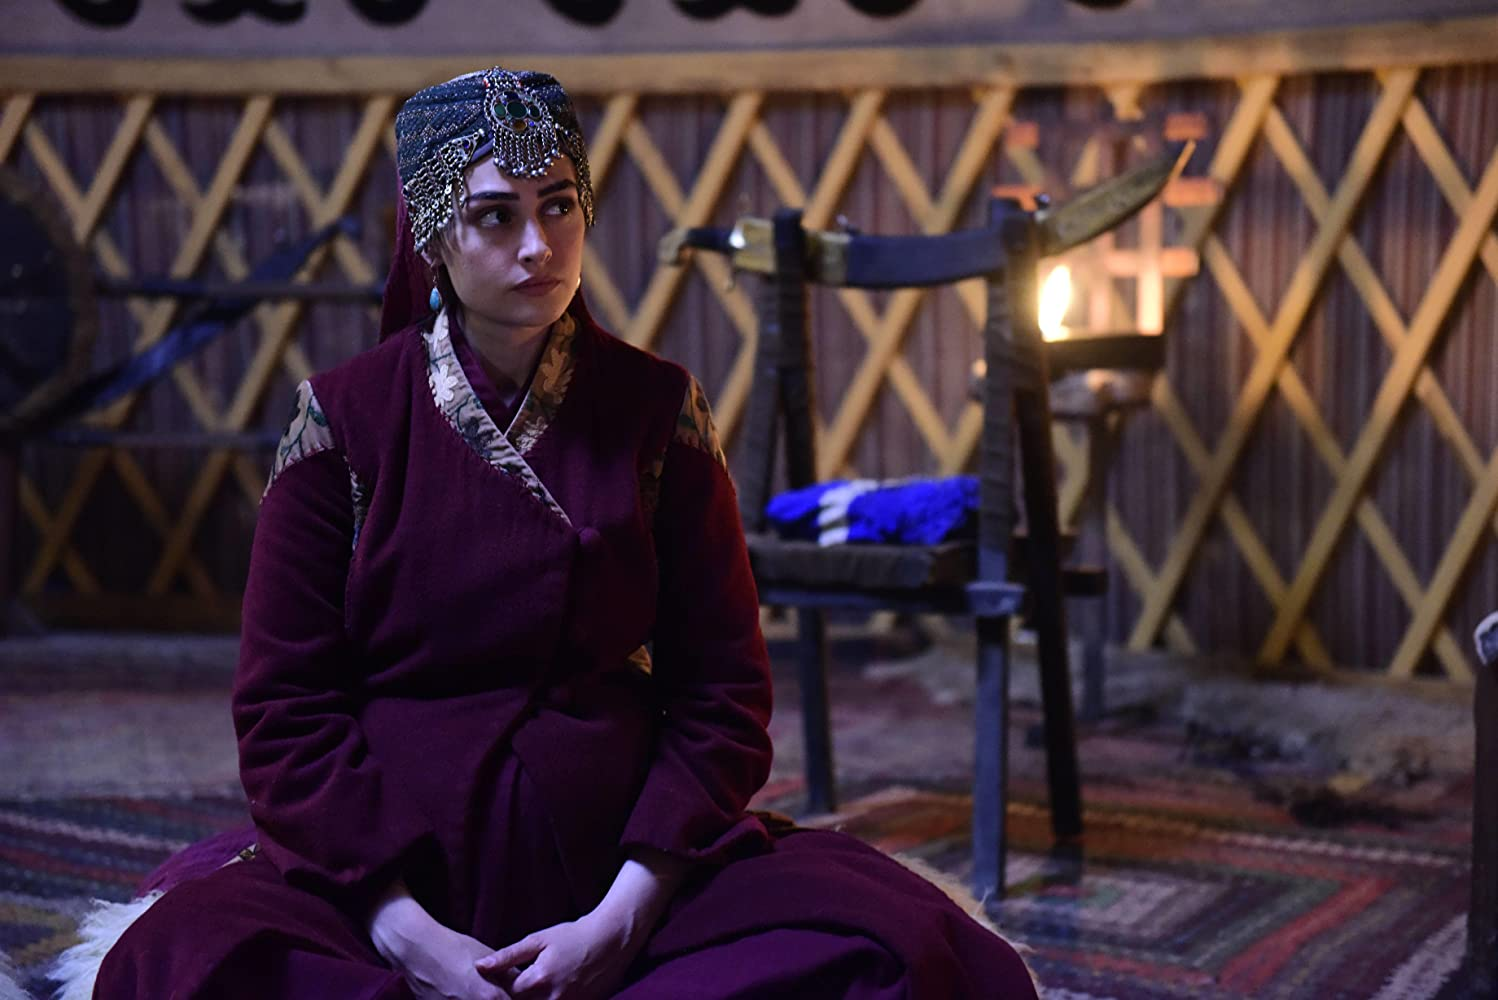 Pictures of Esra bilgic aka Halime Sultan go viral as Ertugrul Ghazi airs on PTV 6 Halime Hatun 12